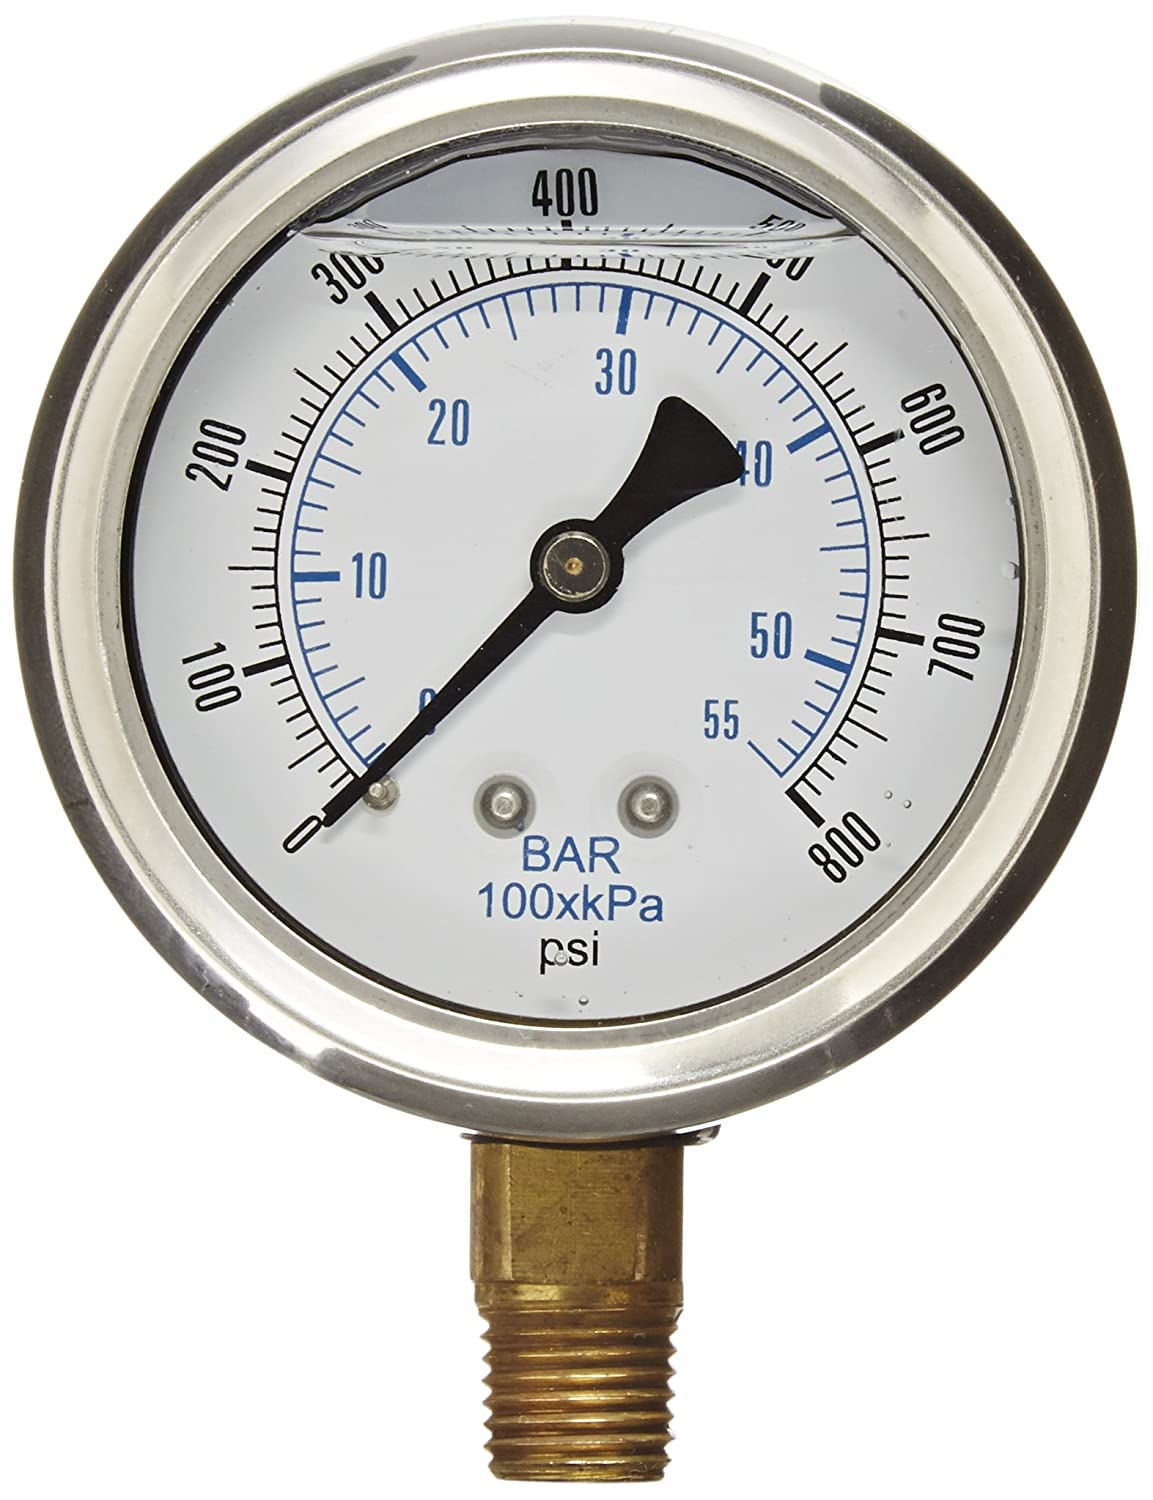 PIC Gauge PRO 201L 254L Glycerin Filled Industrial Bottom Mount Pressure Gauge with Stainless Steel Case Brass Internals Plastic Lens 2 1 2 Dial Size 1 4 Male NPT 0 800 psi